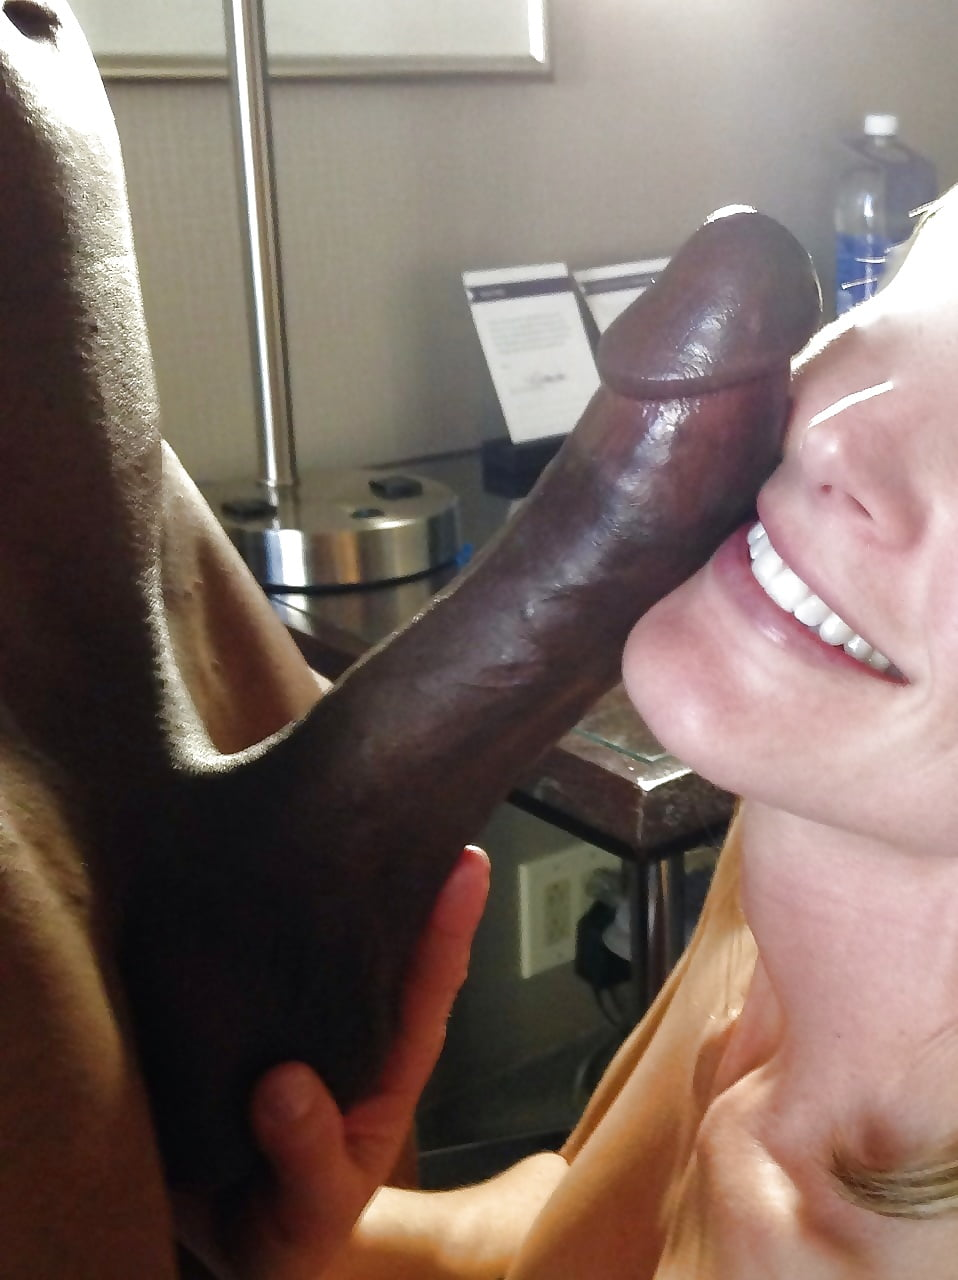 Kiara lord fucks and sucks big black cock in pov